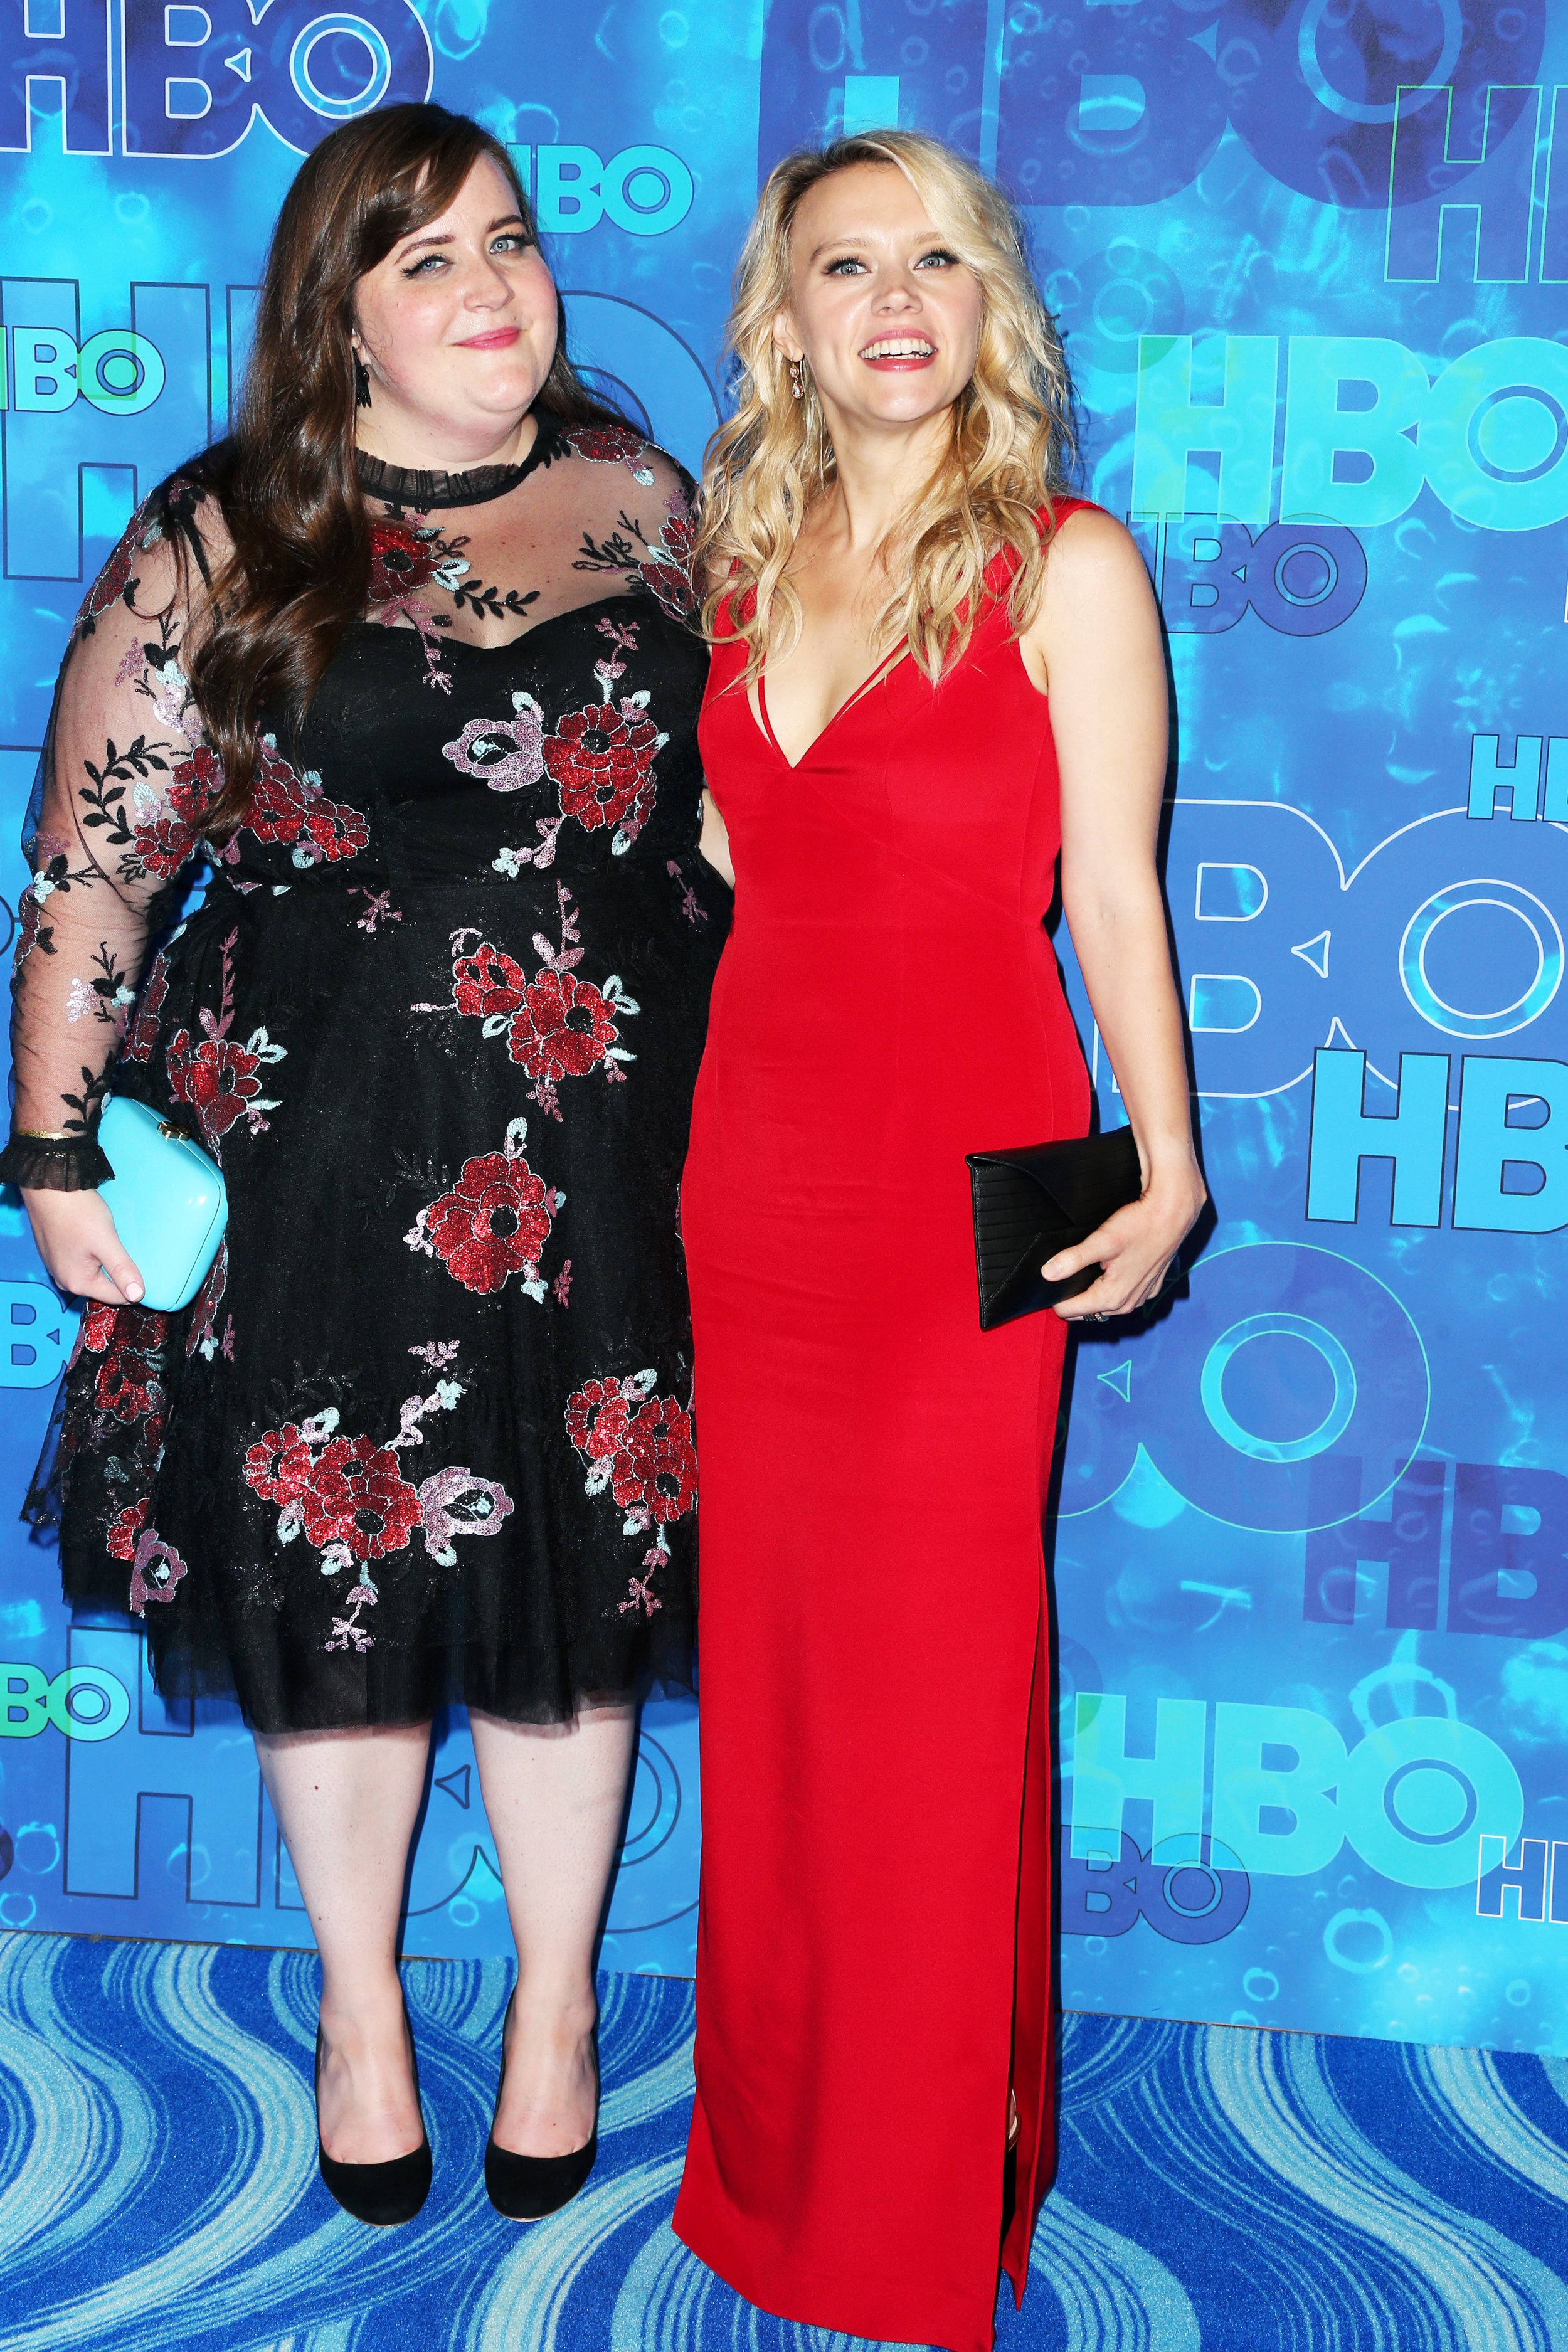 LOS ANGELES, CA - SEPTEMBER 18: Actresses Aidy Bryant (L) and Kate McKinnon attend HBO's Official 2016 Emmy After Party at The Plaza at the Pacific Design Center on September 18, 2016 in Los Angeles, California. (Photo by Frederick M. Brown/Getty Images)